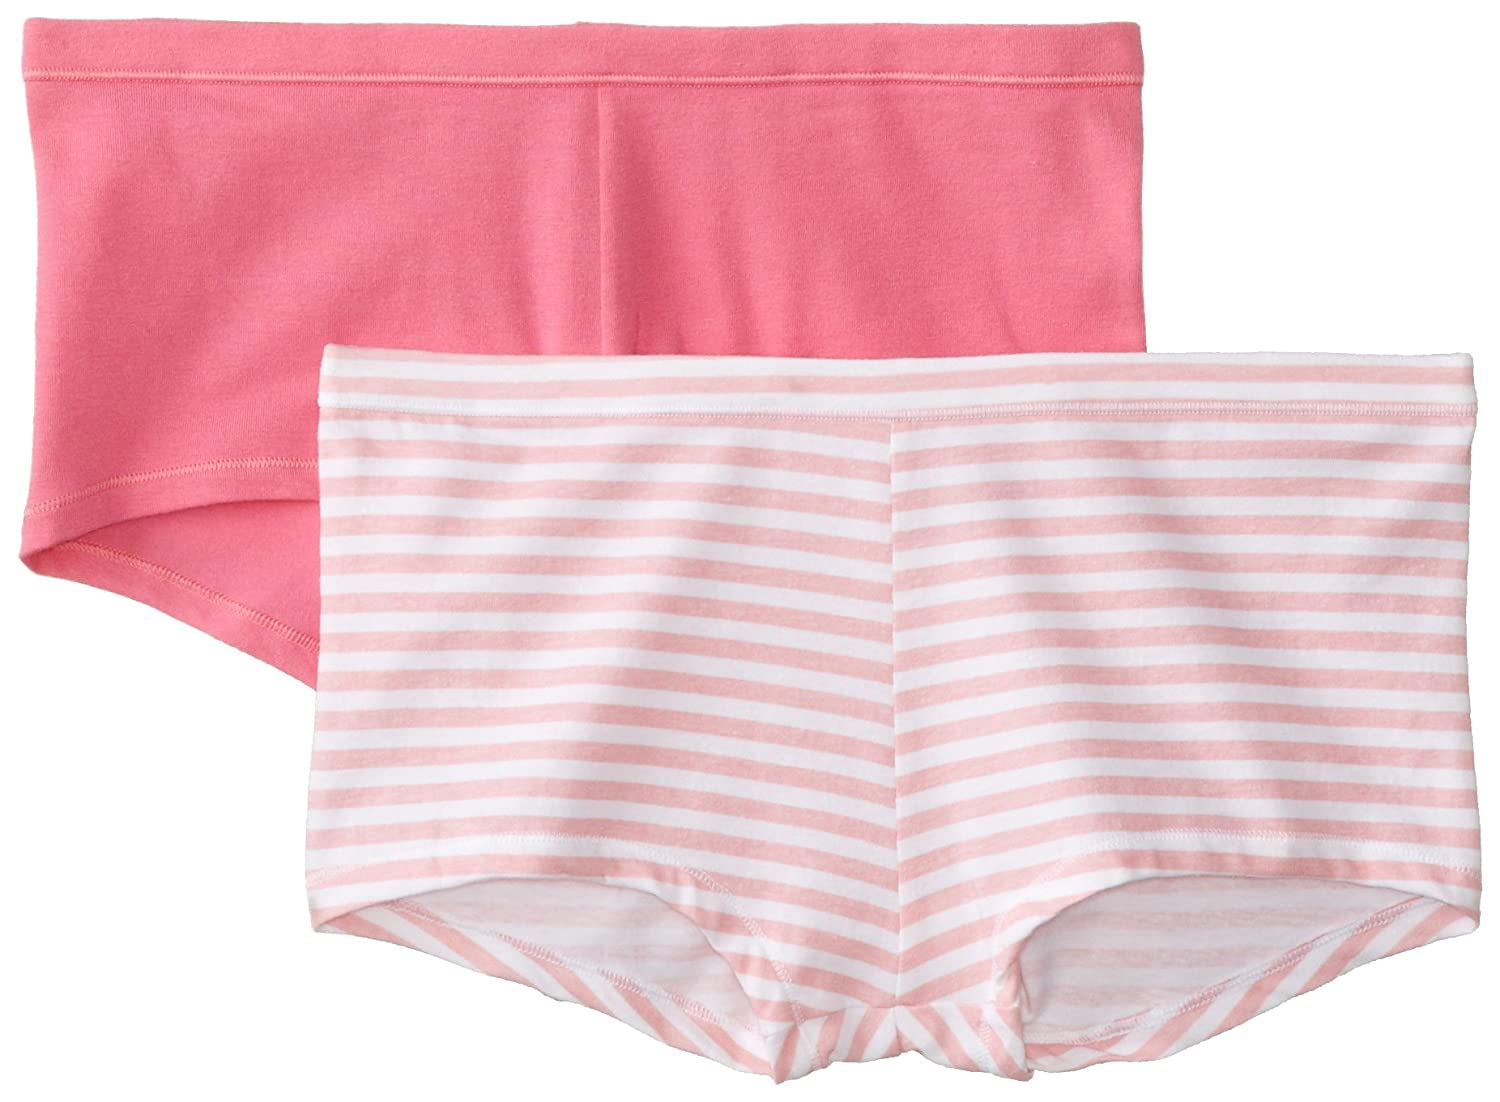 Hanes Women's Cotton Stretch Boy Brief Panty (Pack of 2) Hanes Women's Panties D49EAS